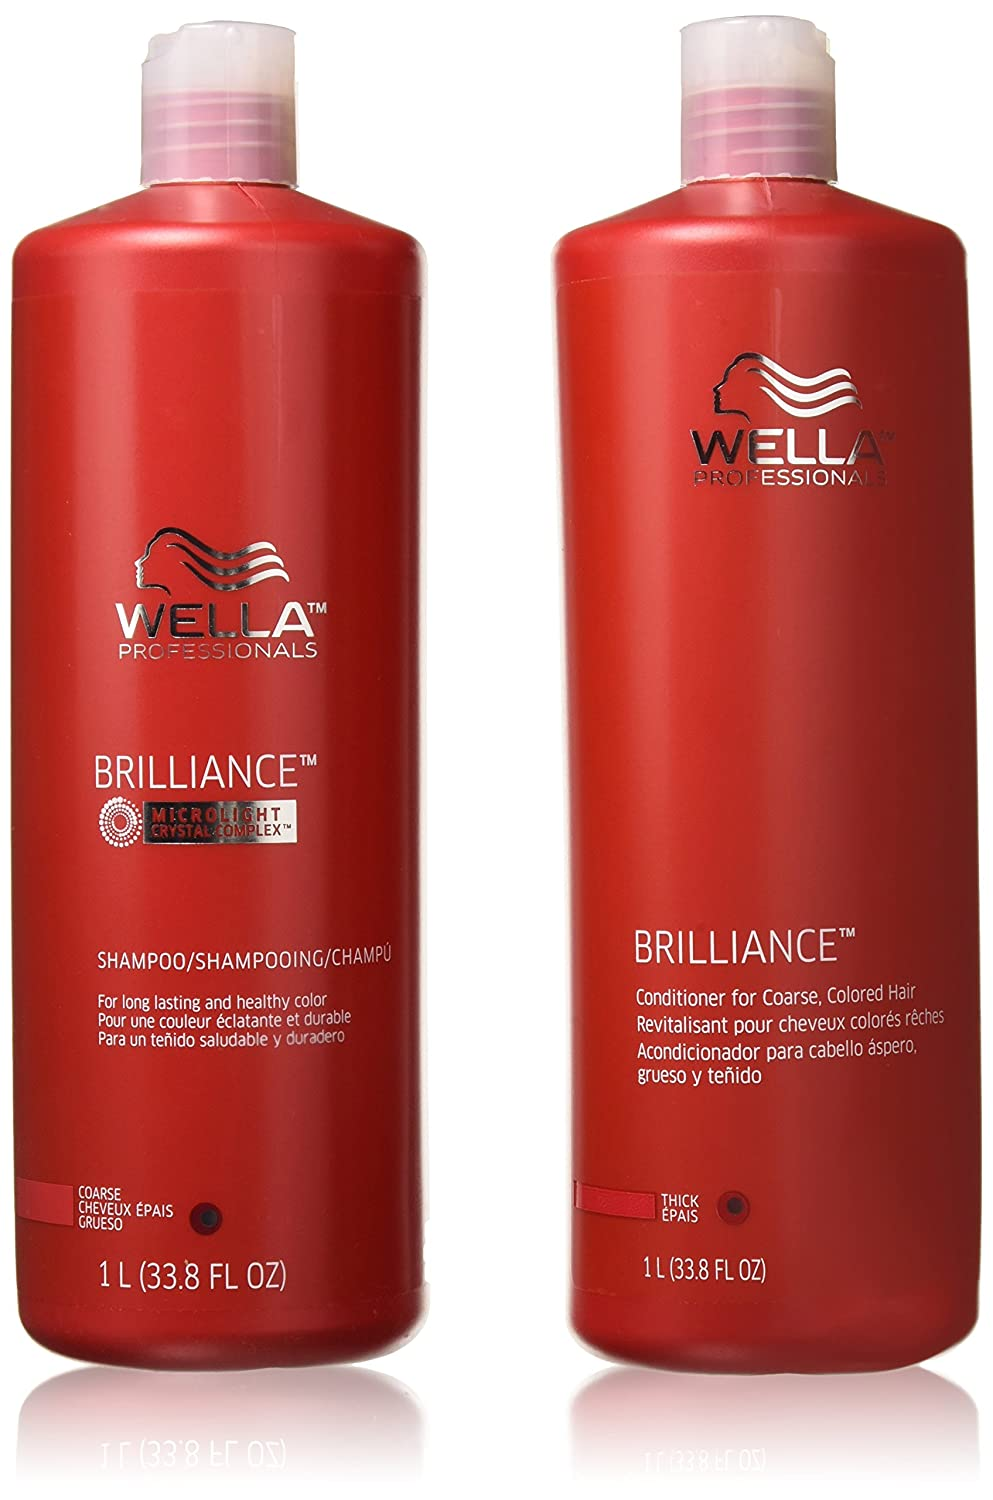 2. Wella Brilliance Shampoo and Conditioner Coarse Colored Hair - Best Shampoo for Smoothing Coarse Hair